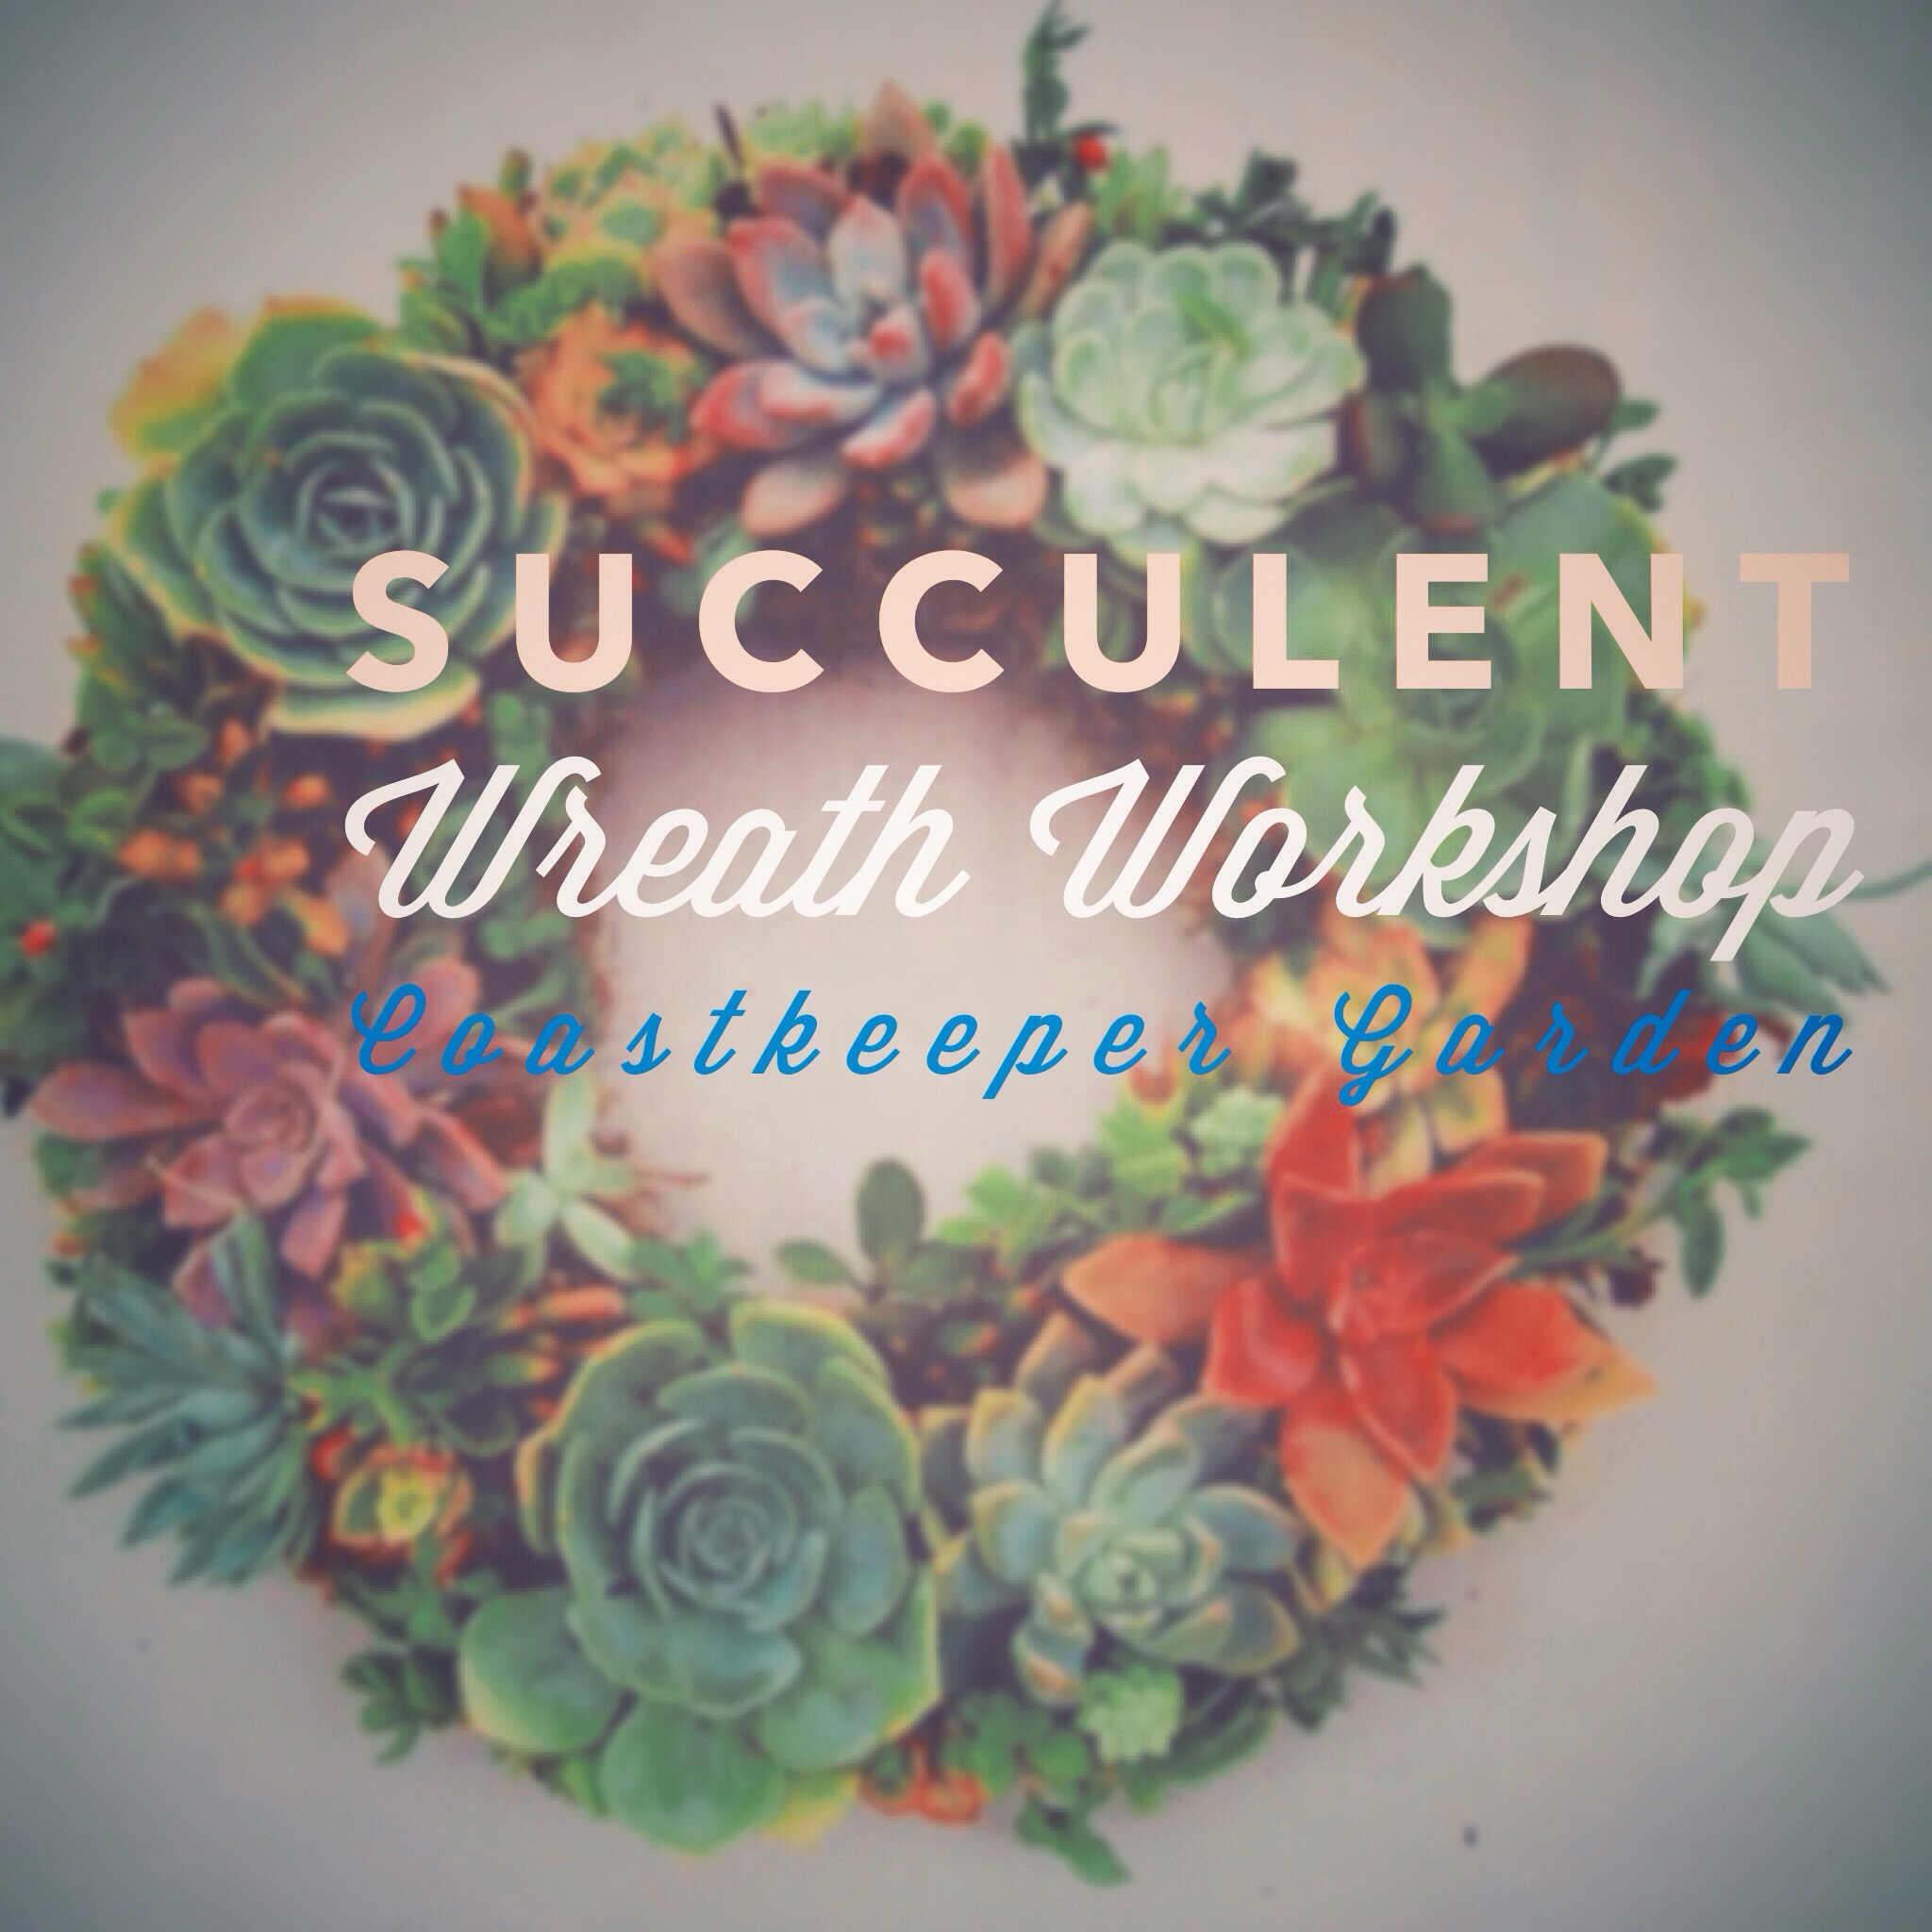 Check out this succulent wreath!